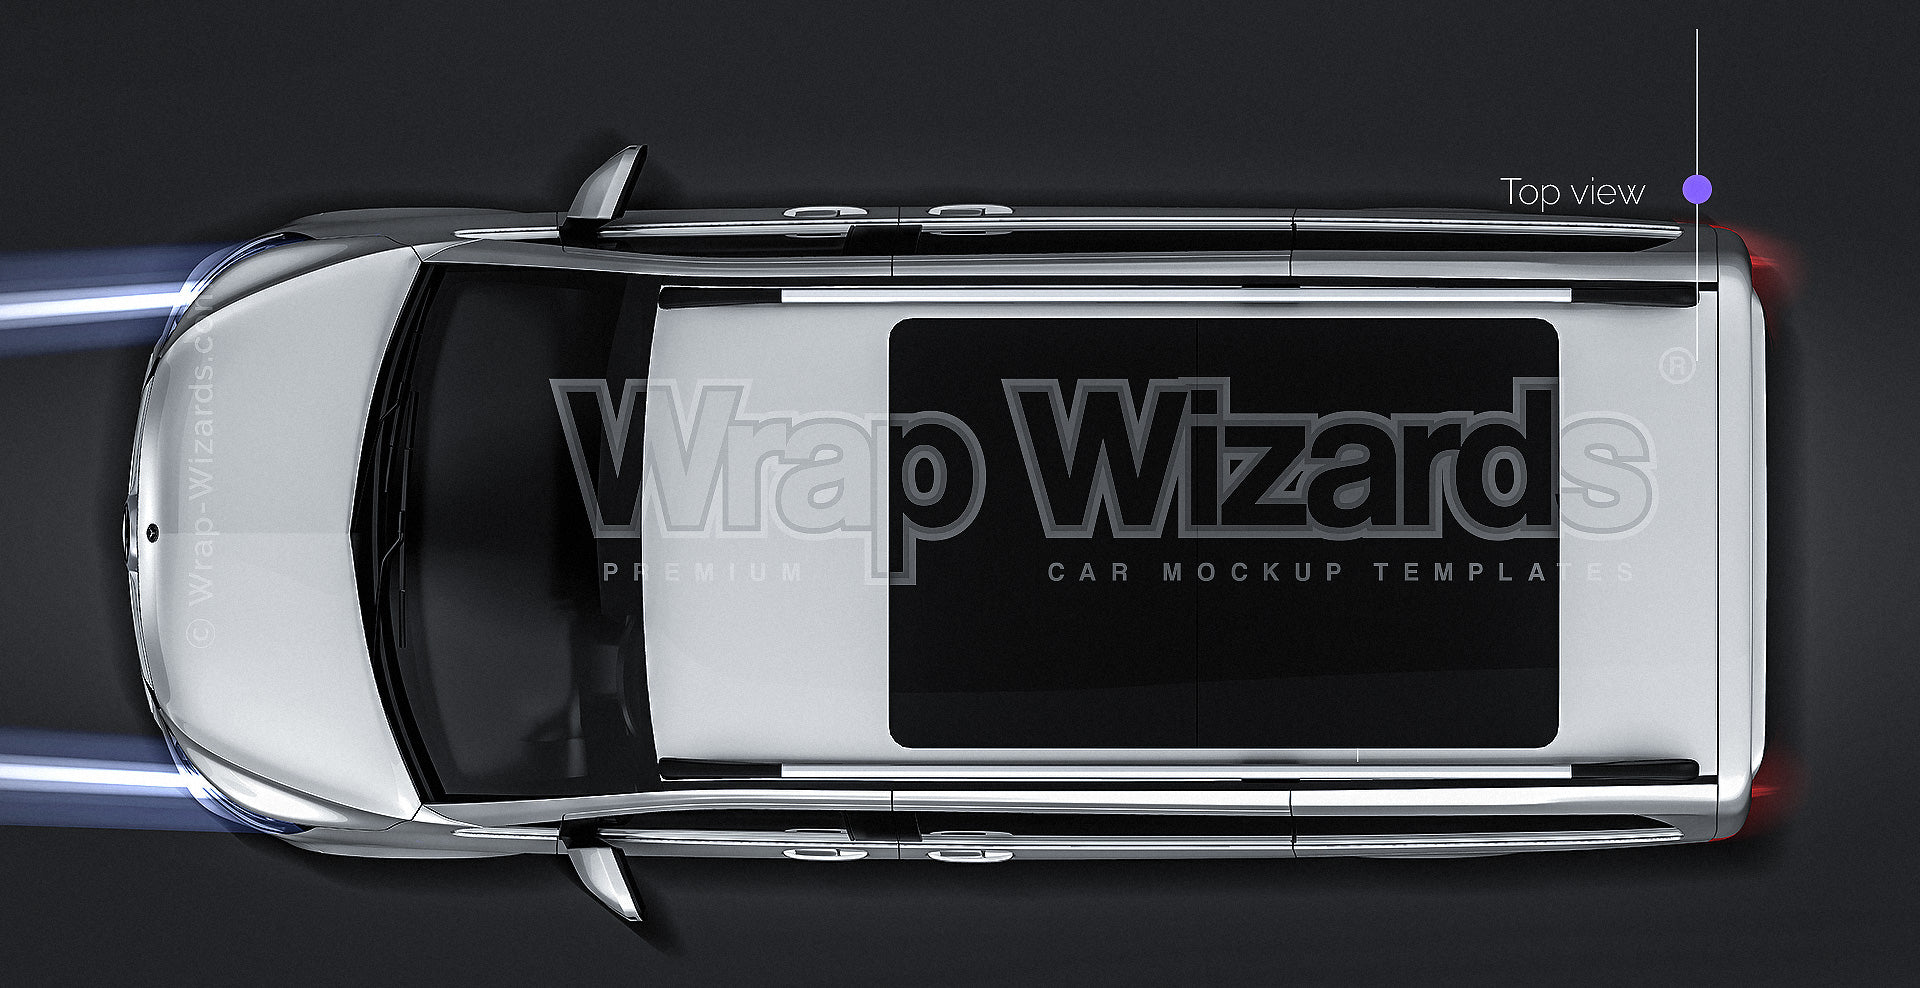 Mercedes-Benz V-Class AMG 2020 glossy finish - all sides Car Mockup Template.psd